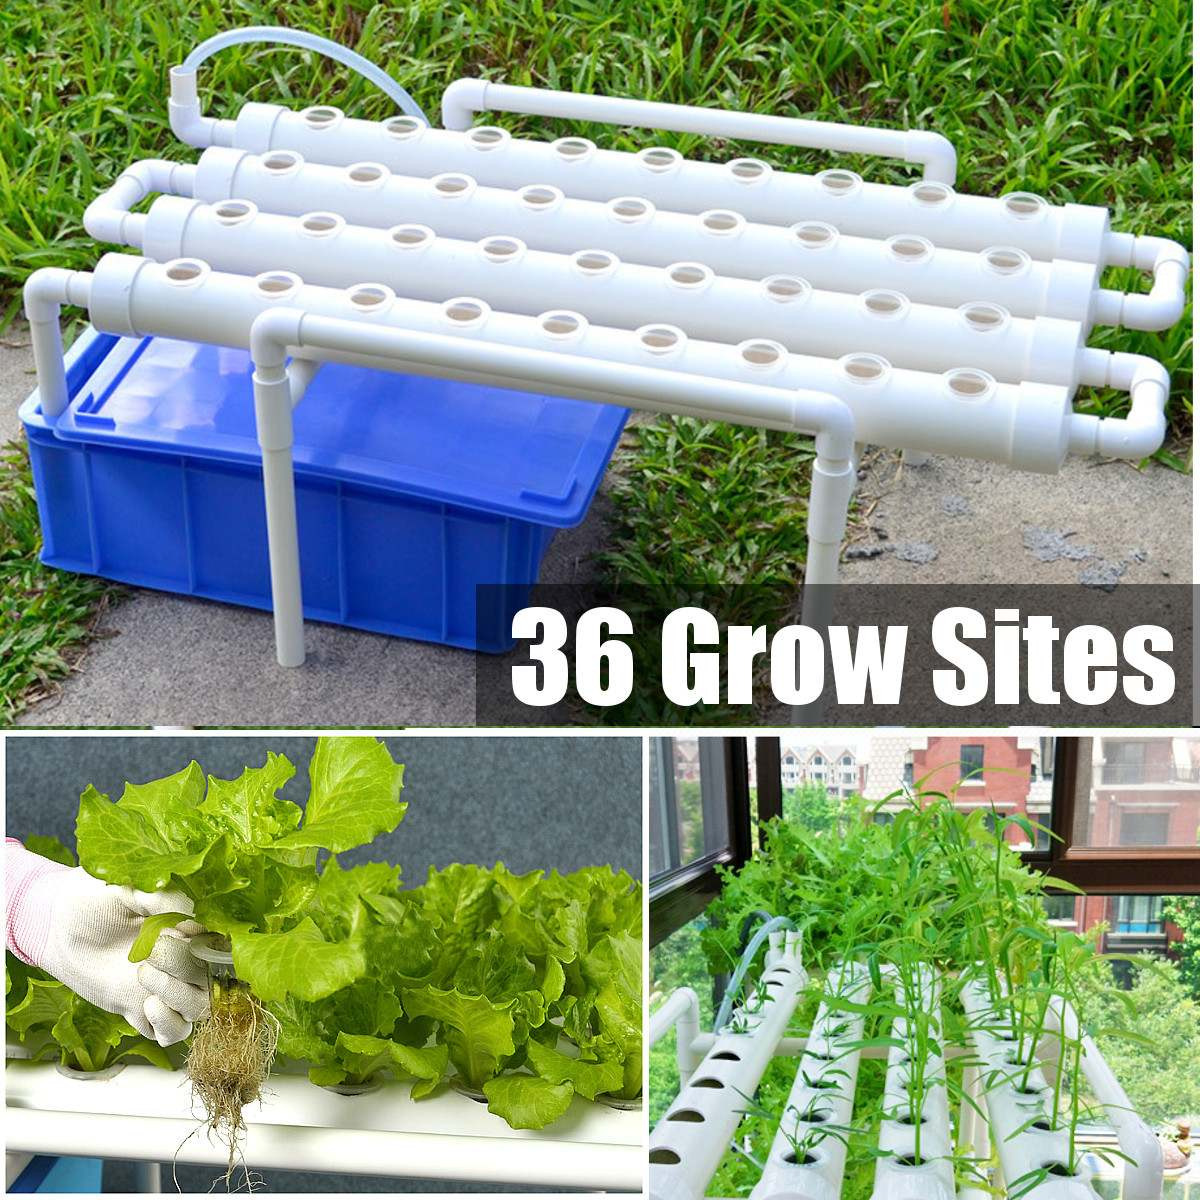 Hydroponic-Rack-Holder Equipment Planting-Box Seedling Vegetables Pots-To-Grow-Kit 36-Sites title=